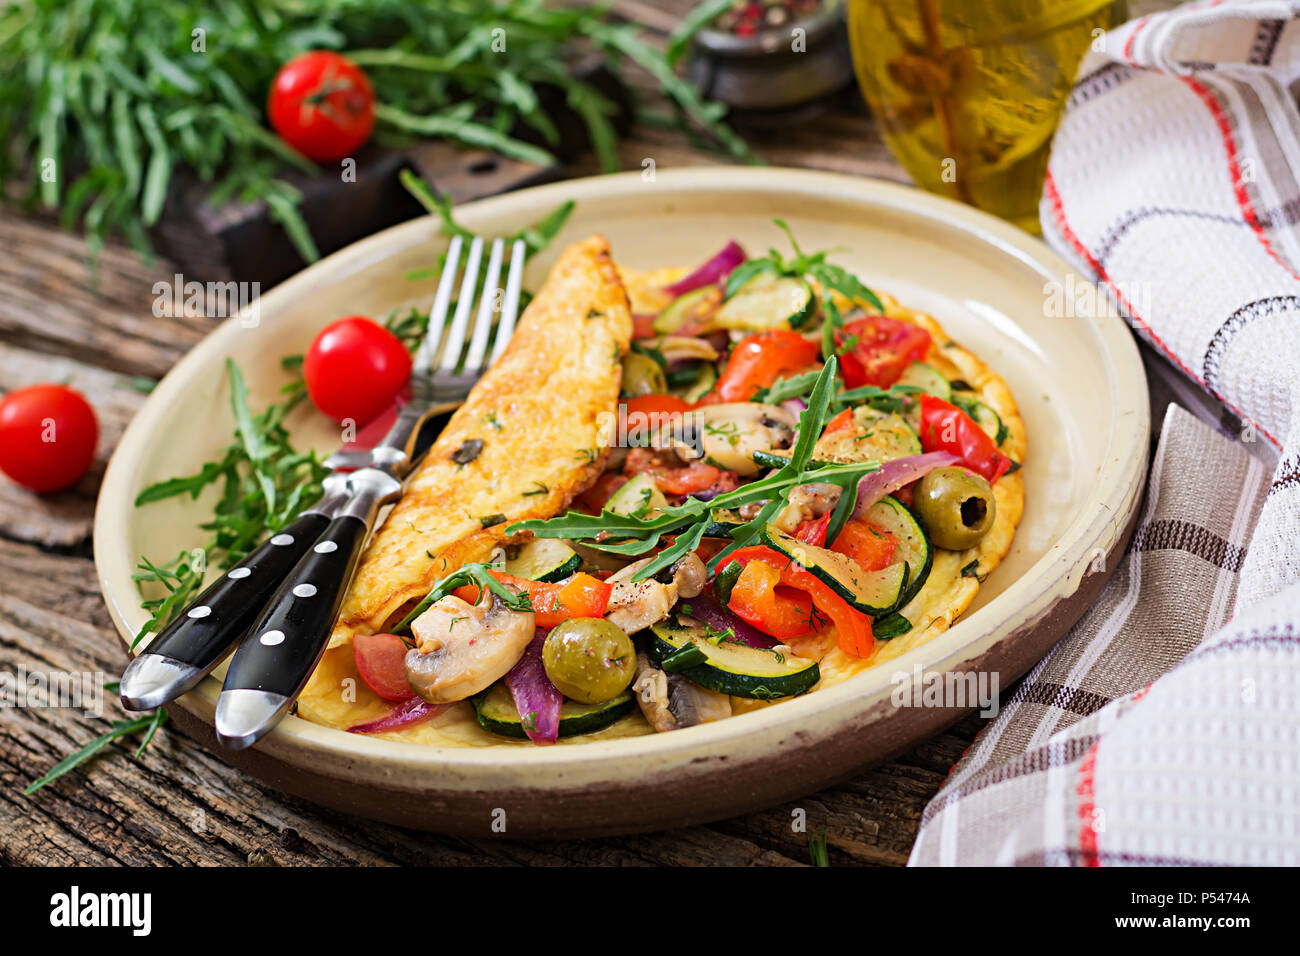 Omelet with tomatoes, zucchini and mushrooms. Omelette breakfast. Healthy food. - Stock Image